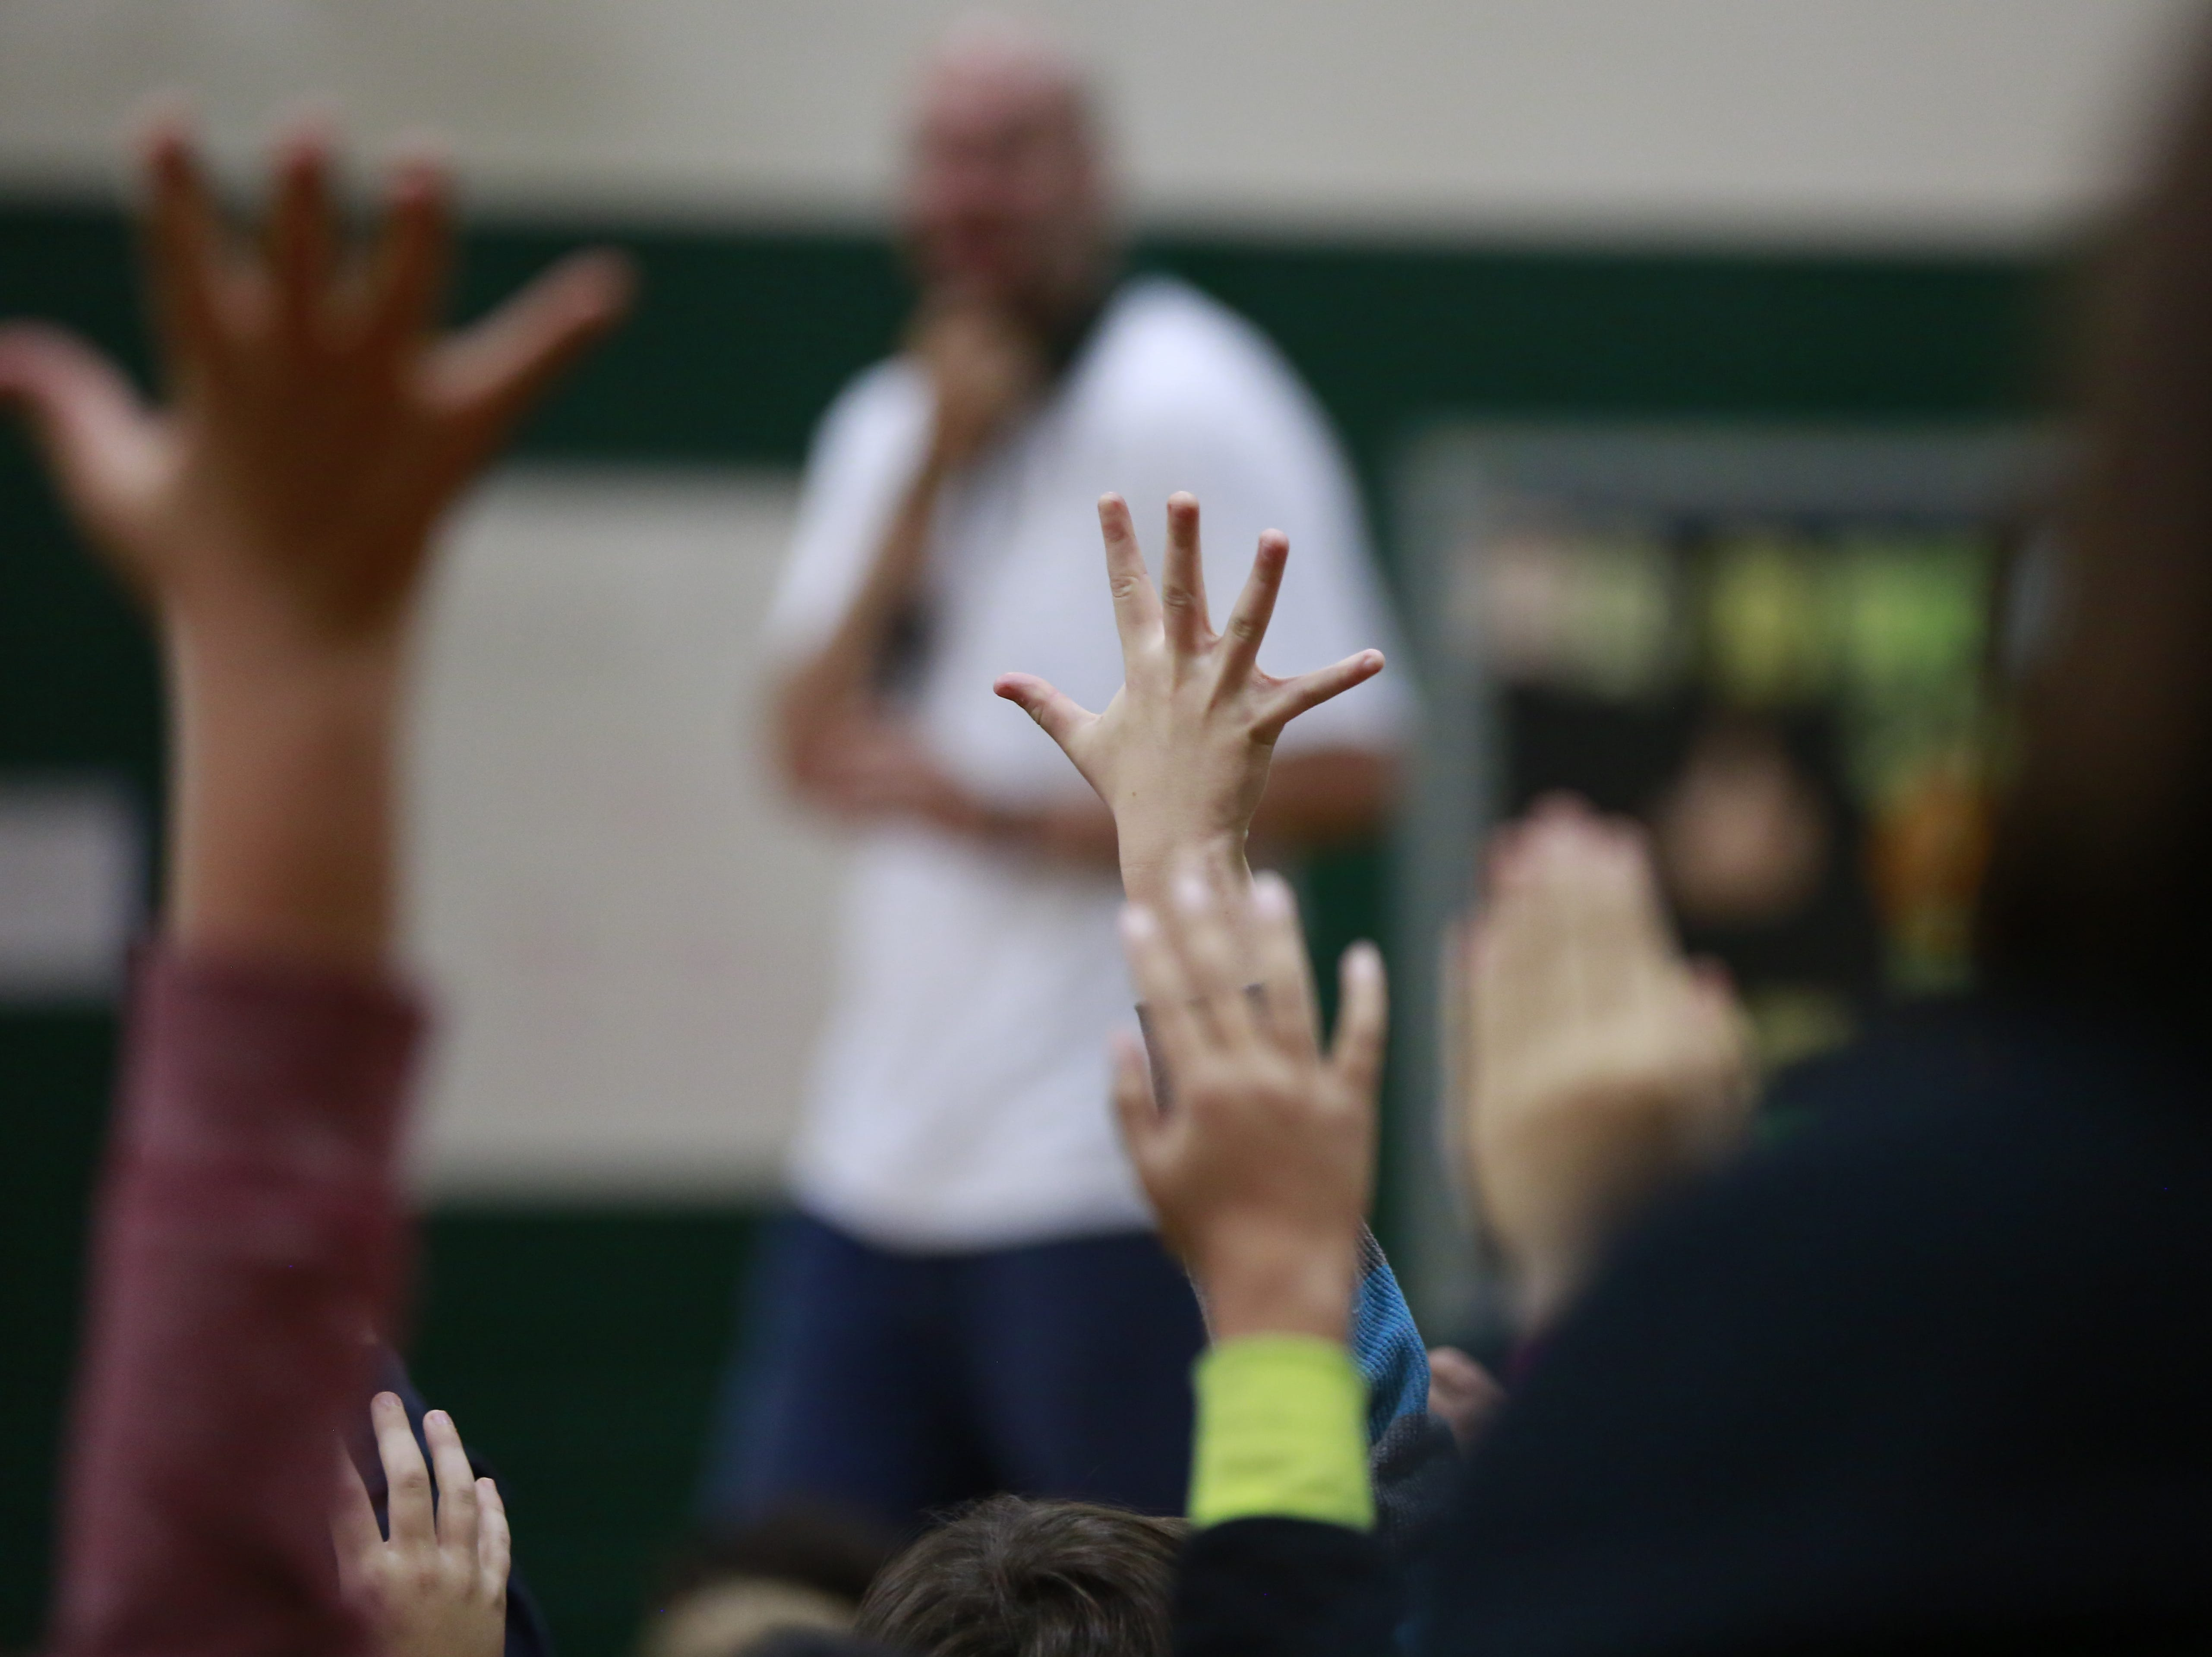 Hands raise by students Monday, Oct. 15, 2018, during the Anti-Bullying Relentless Tour to Visit Wisconsin at Weston Elementary School in Weston, Wis. T'xer Zhon Kha/USA TODAY NETWORK-Wisconsin